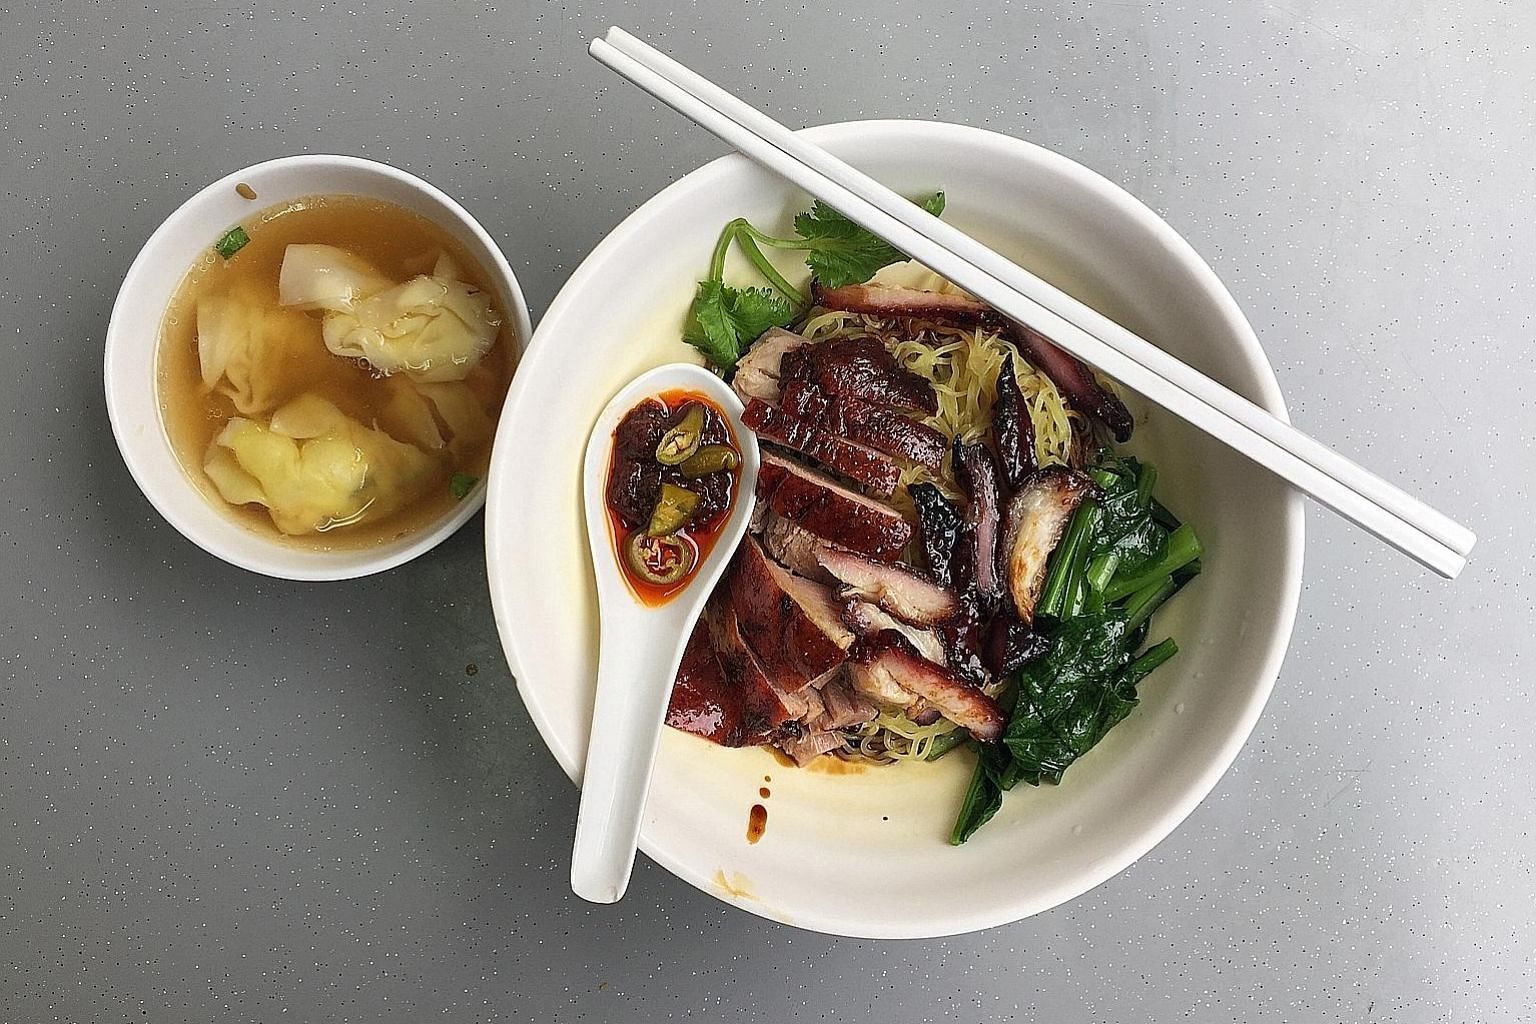 The wonton noodles with char siew and roast duck.